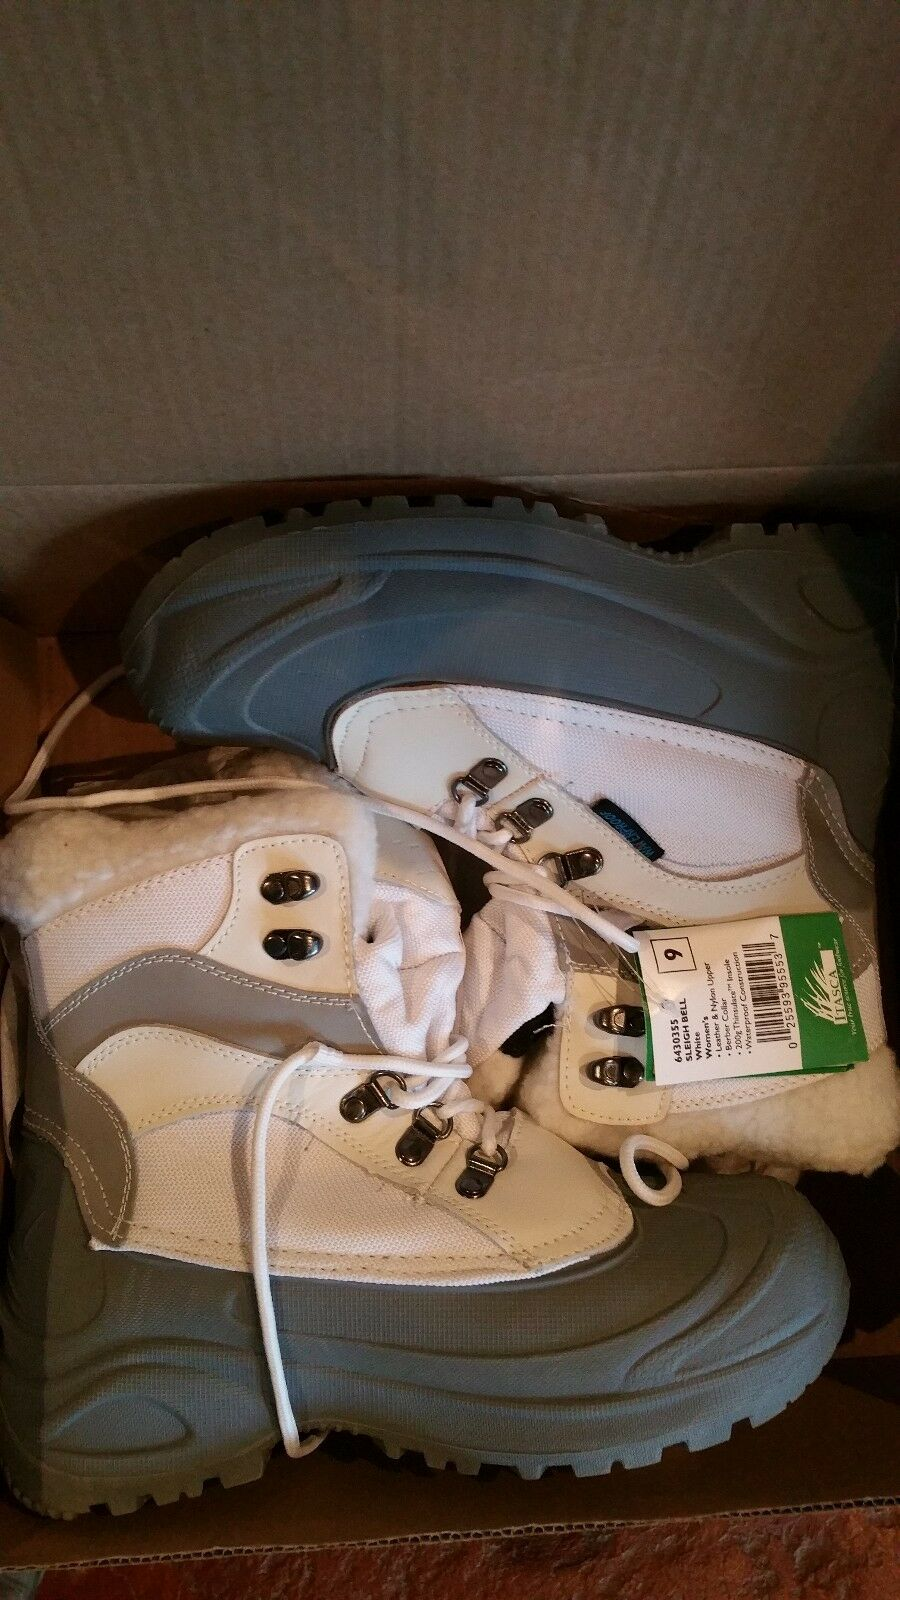 Itasca womens sleigh bell sbow boots white grey size 9